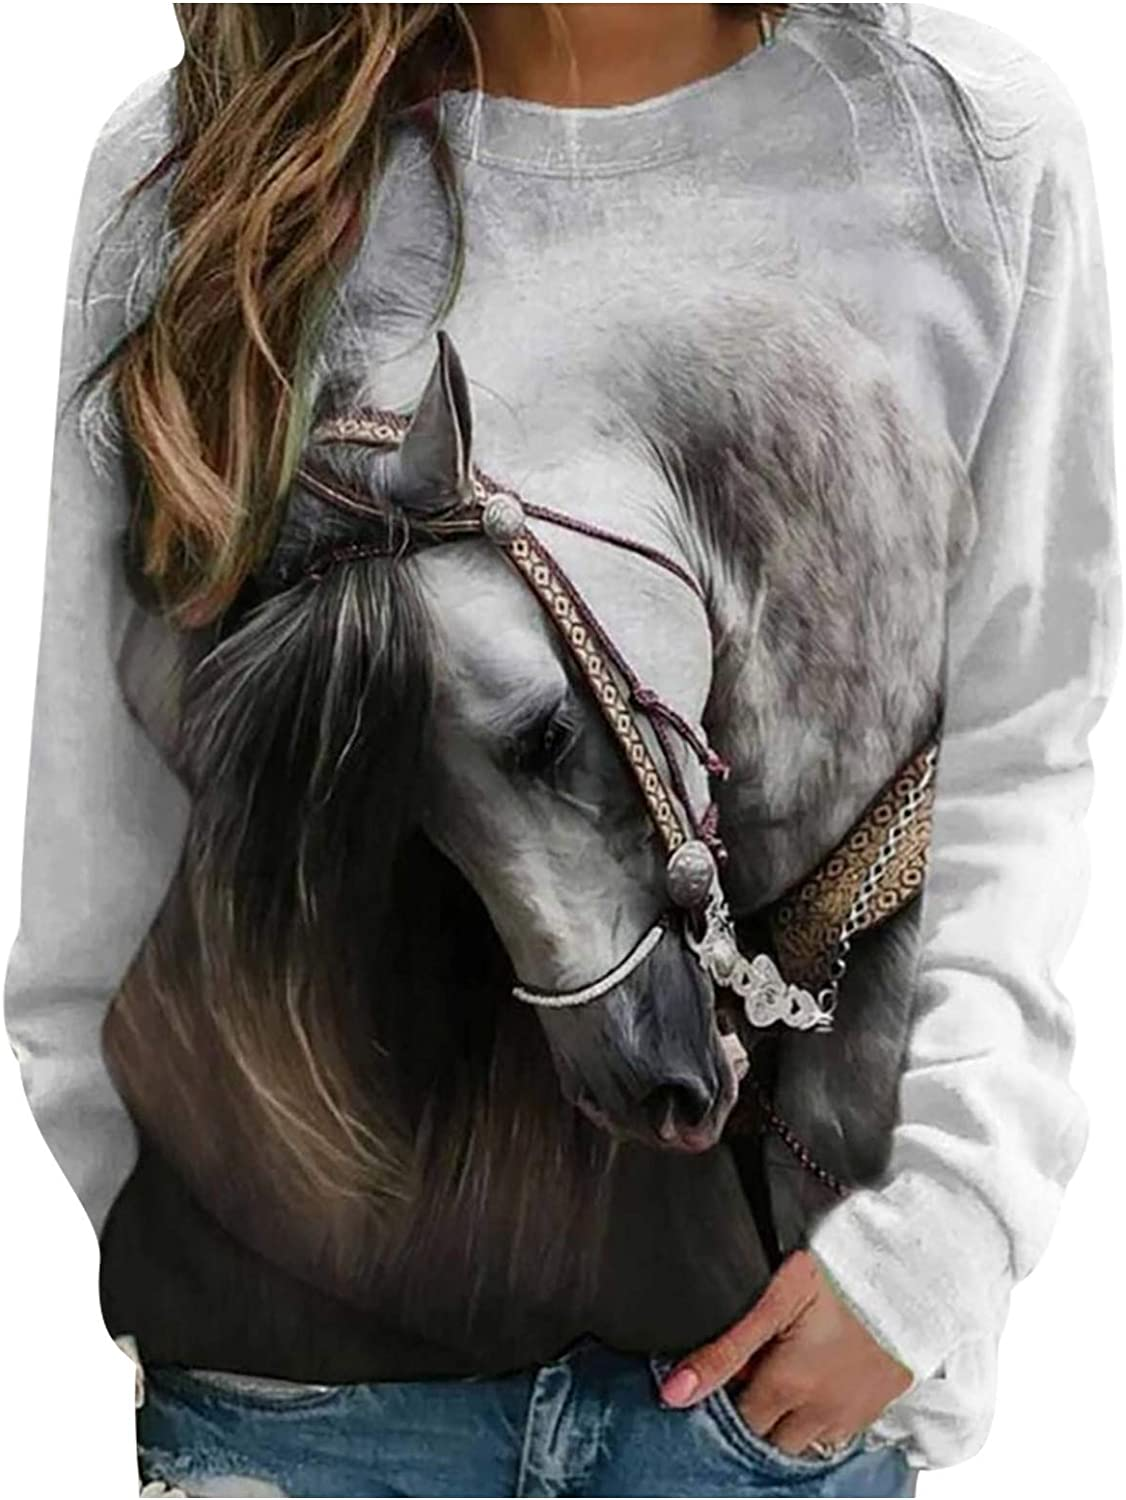 Sweatshirts for Women Oil Painting Horse Printed Pullover Tops Long Sleeve O-Neck Casual Loose Jumper Shirts Winter